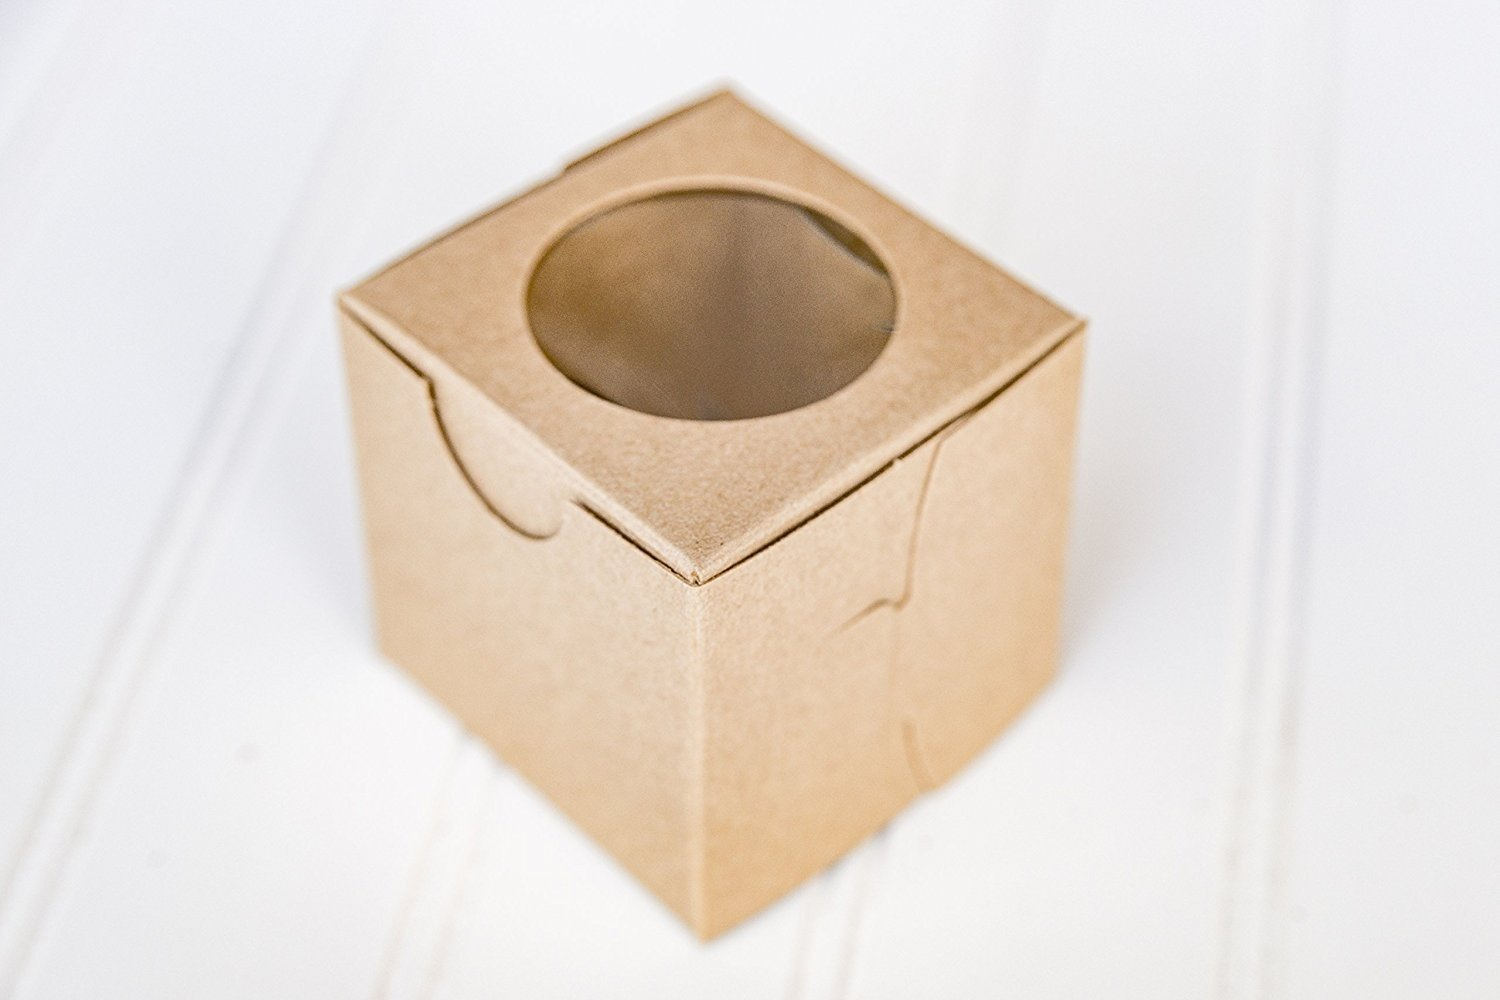 The Buttercup House 12 Kraft Brown Mini Cupcake Boxes Window 2.5 x 2.5 x 2.5 inches